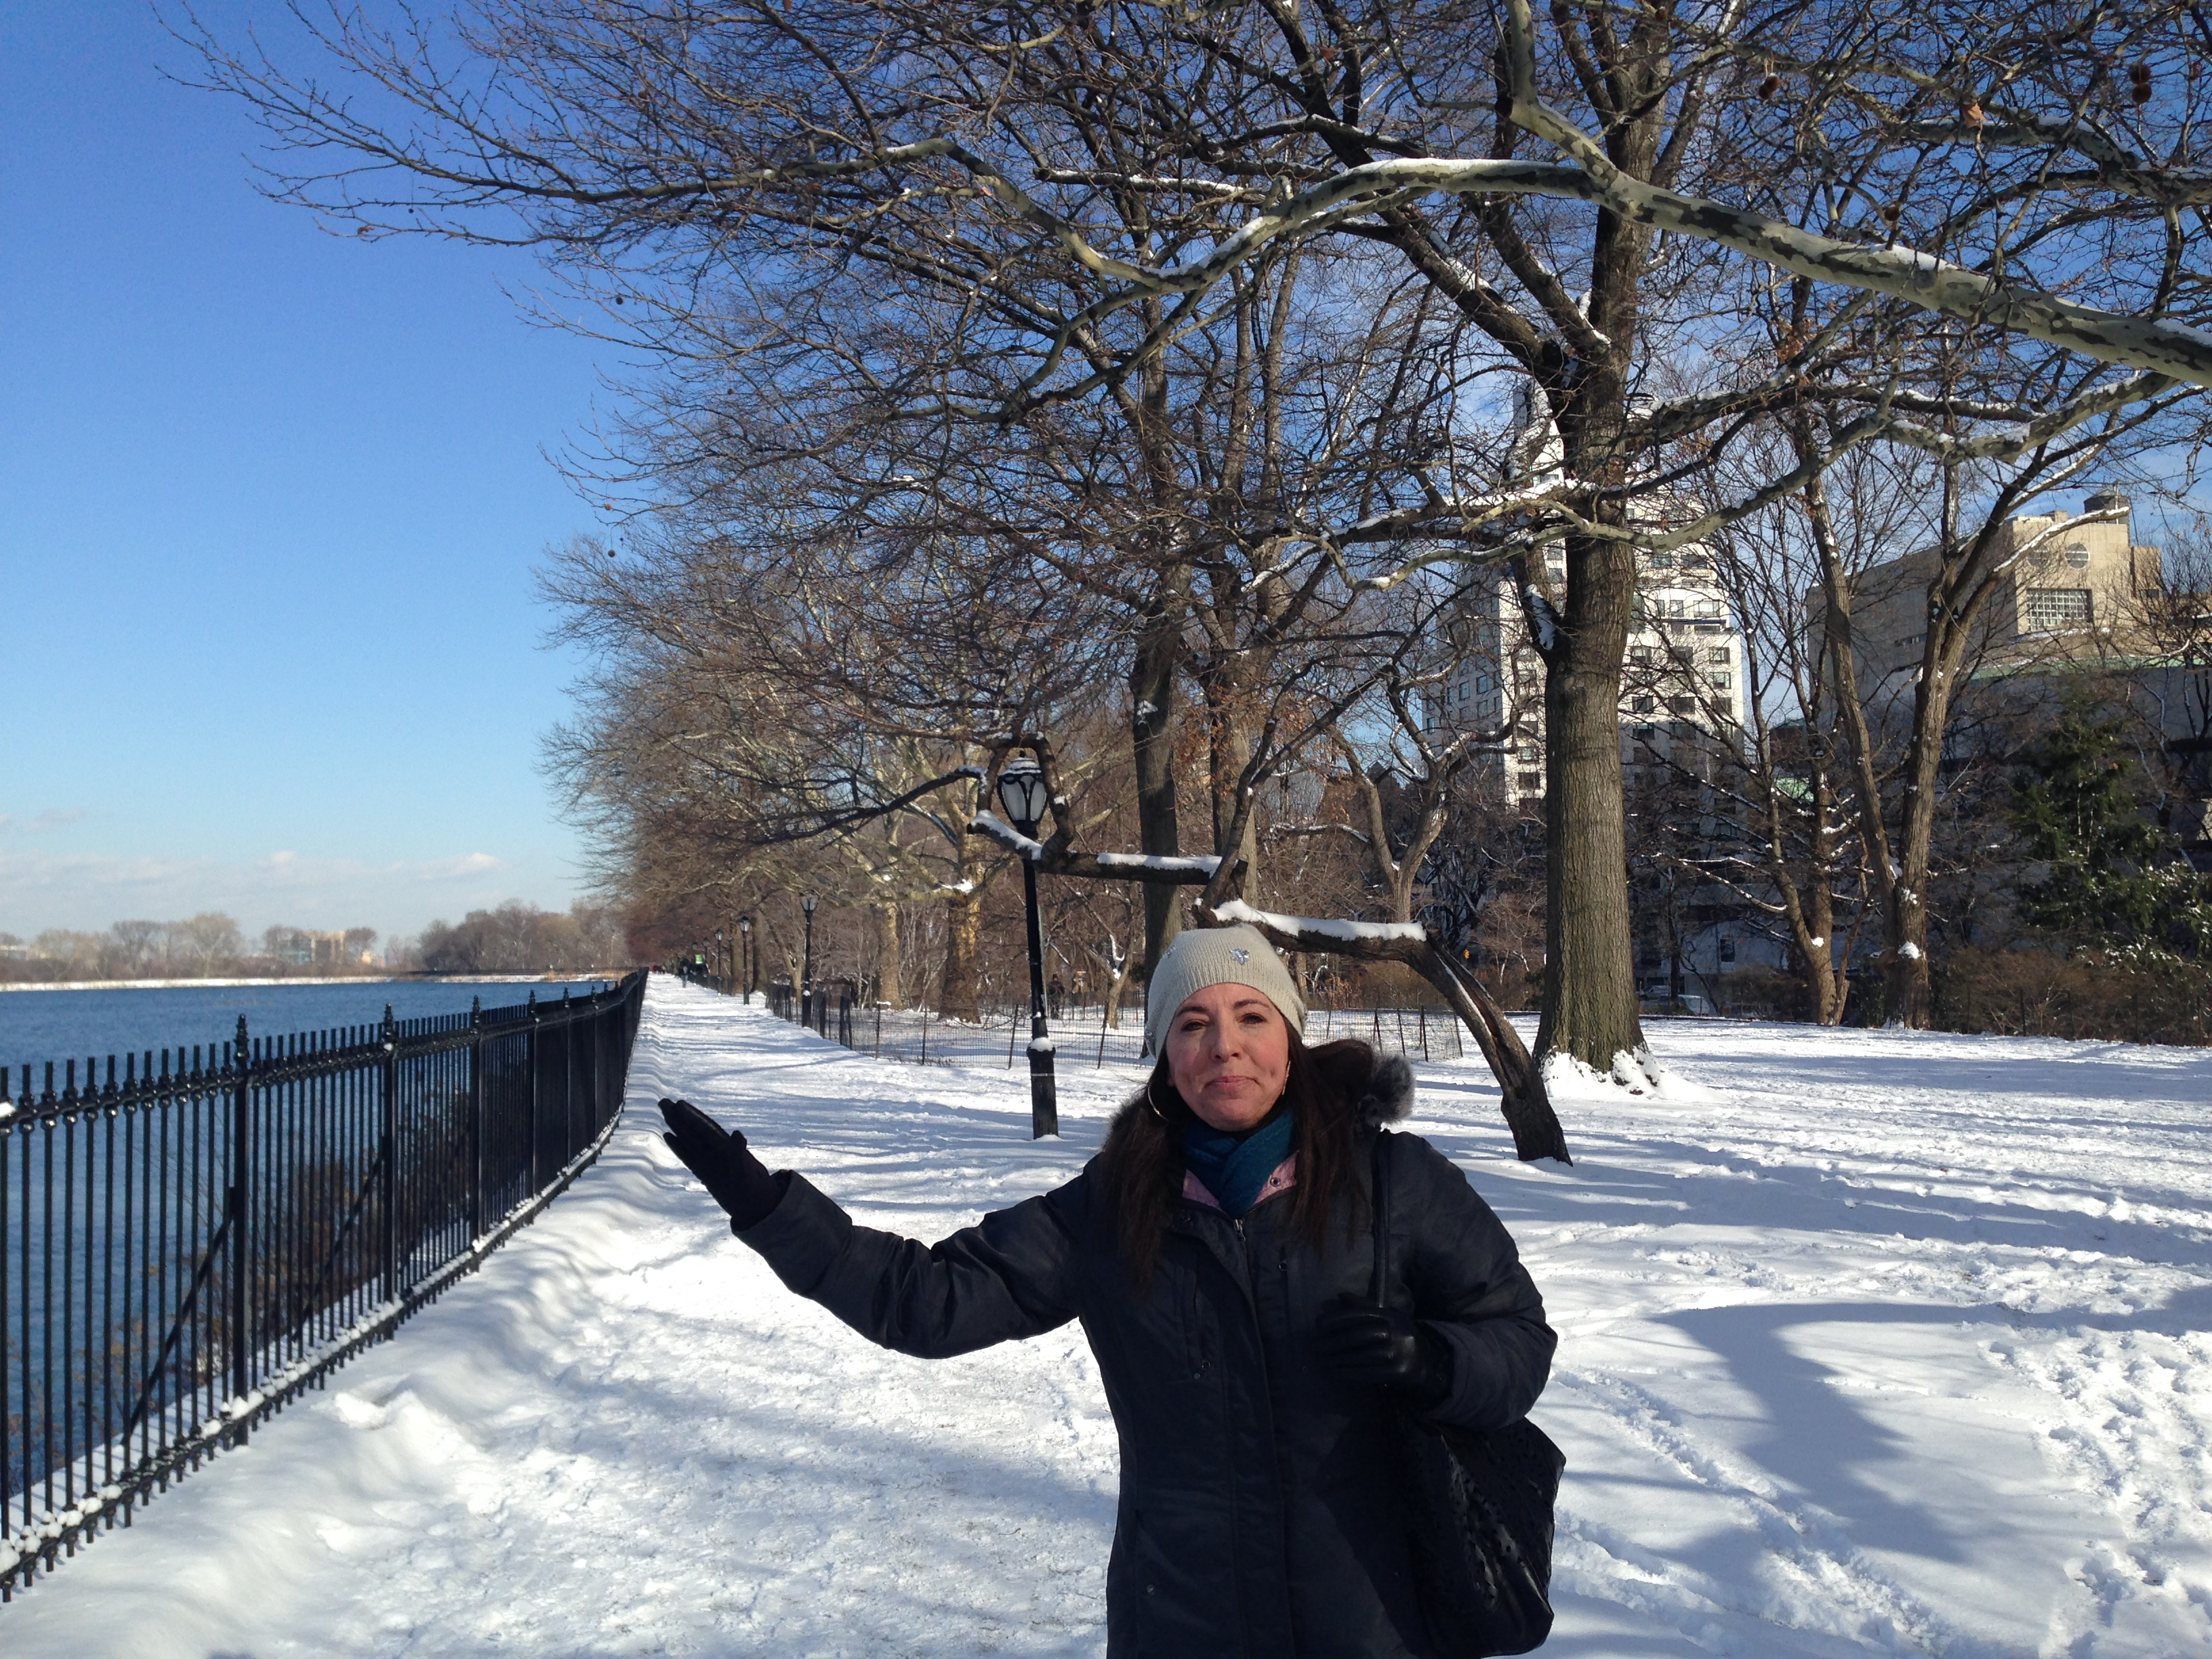 My lovely friend and host Nadine showing off Central Park in the snow